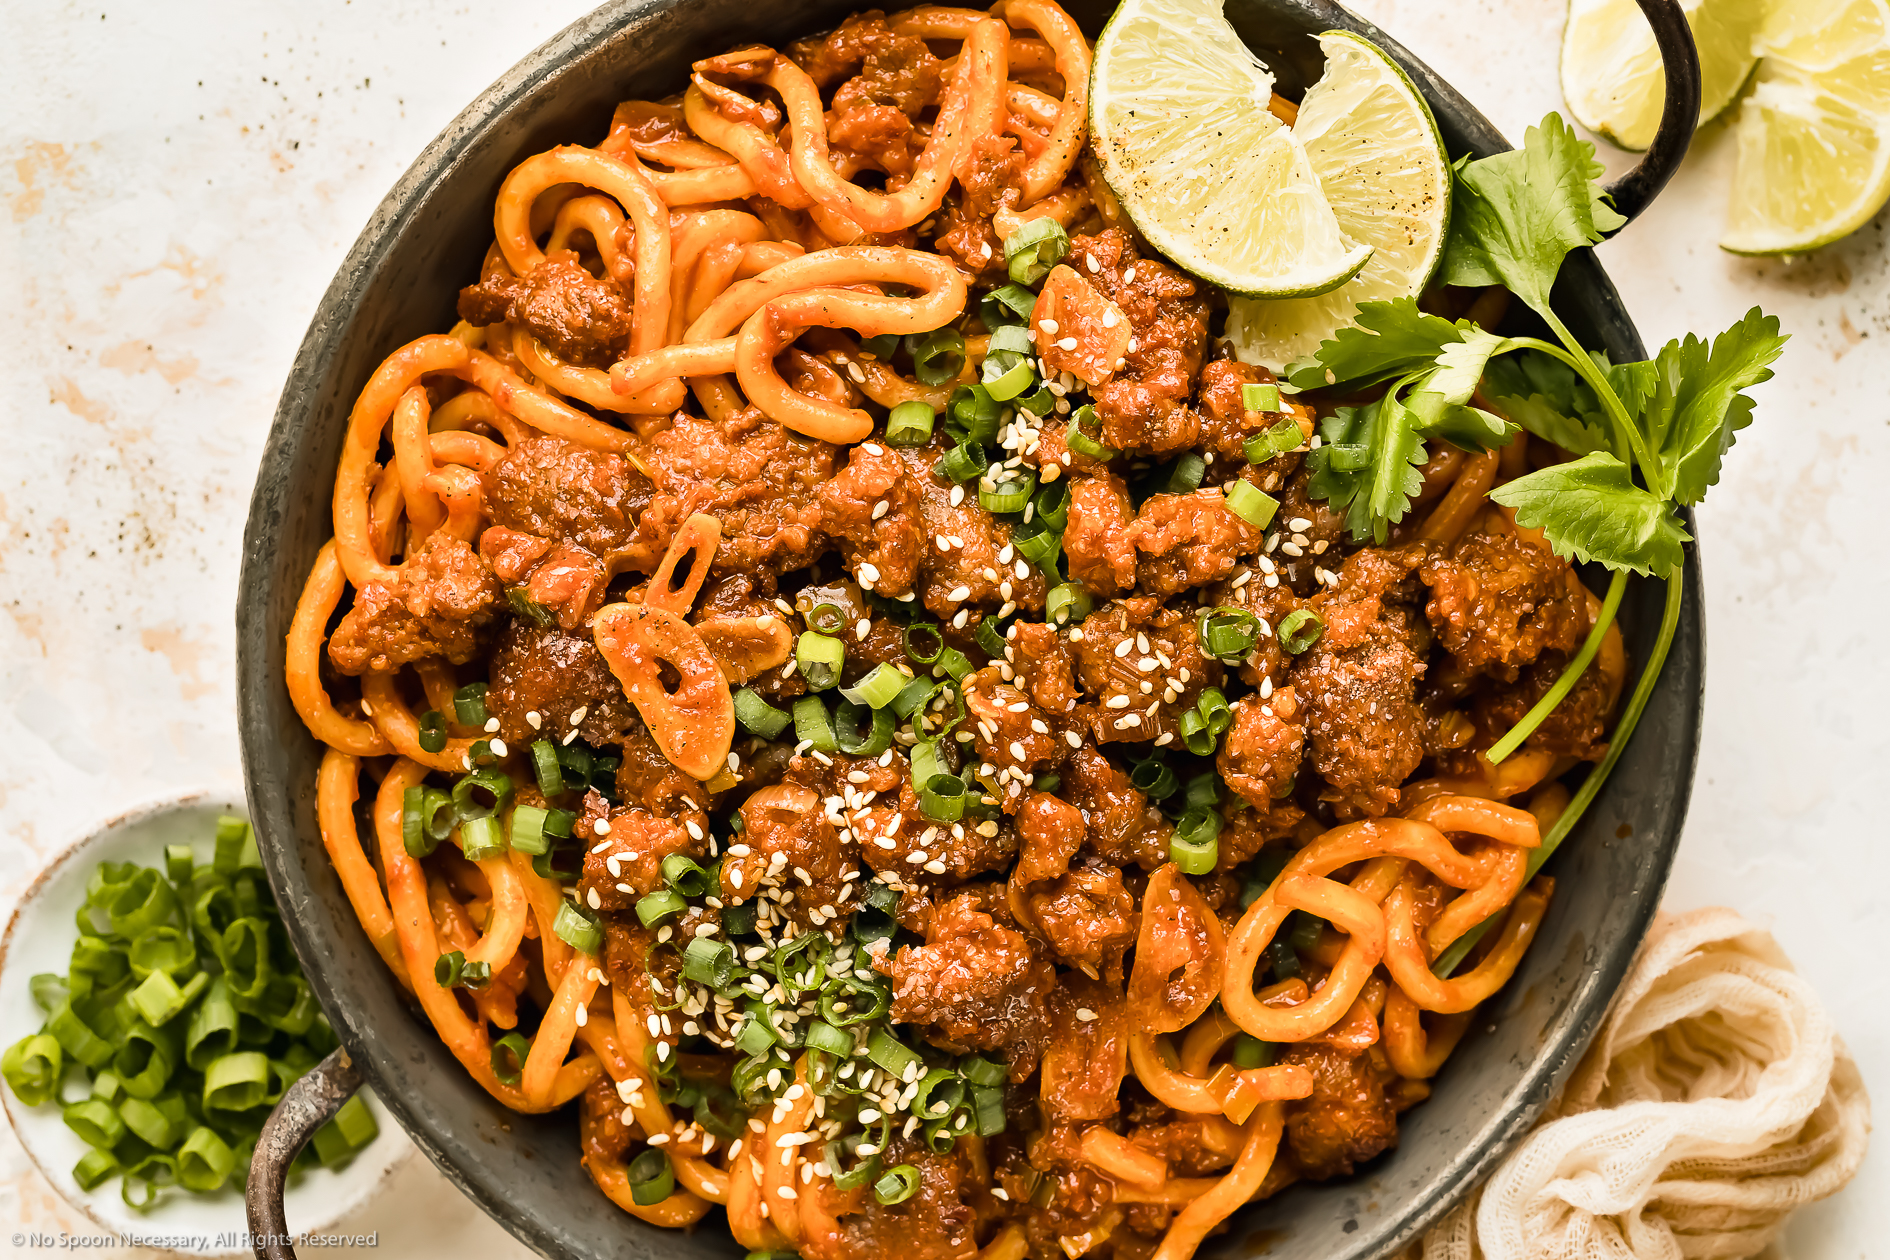 Overhead photo of Stir Fry Udon Noodles with Pork in a small wok with lime wedges and sliced scallions next to the pan.